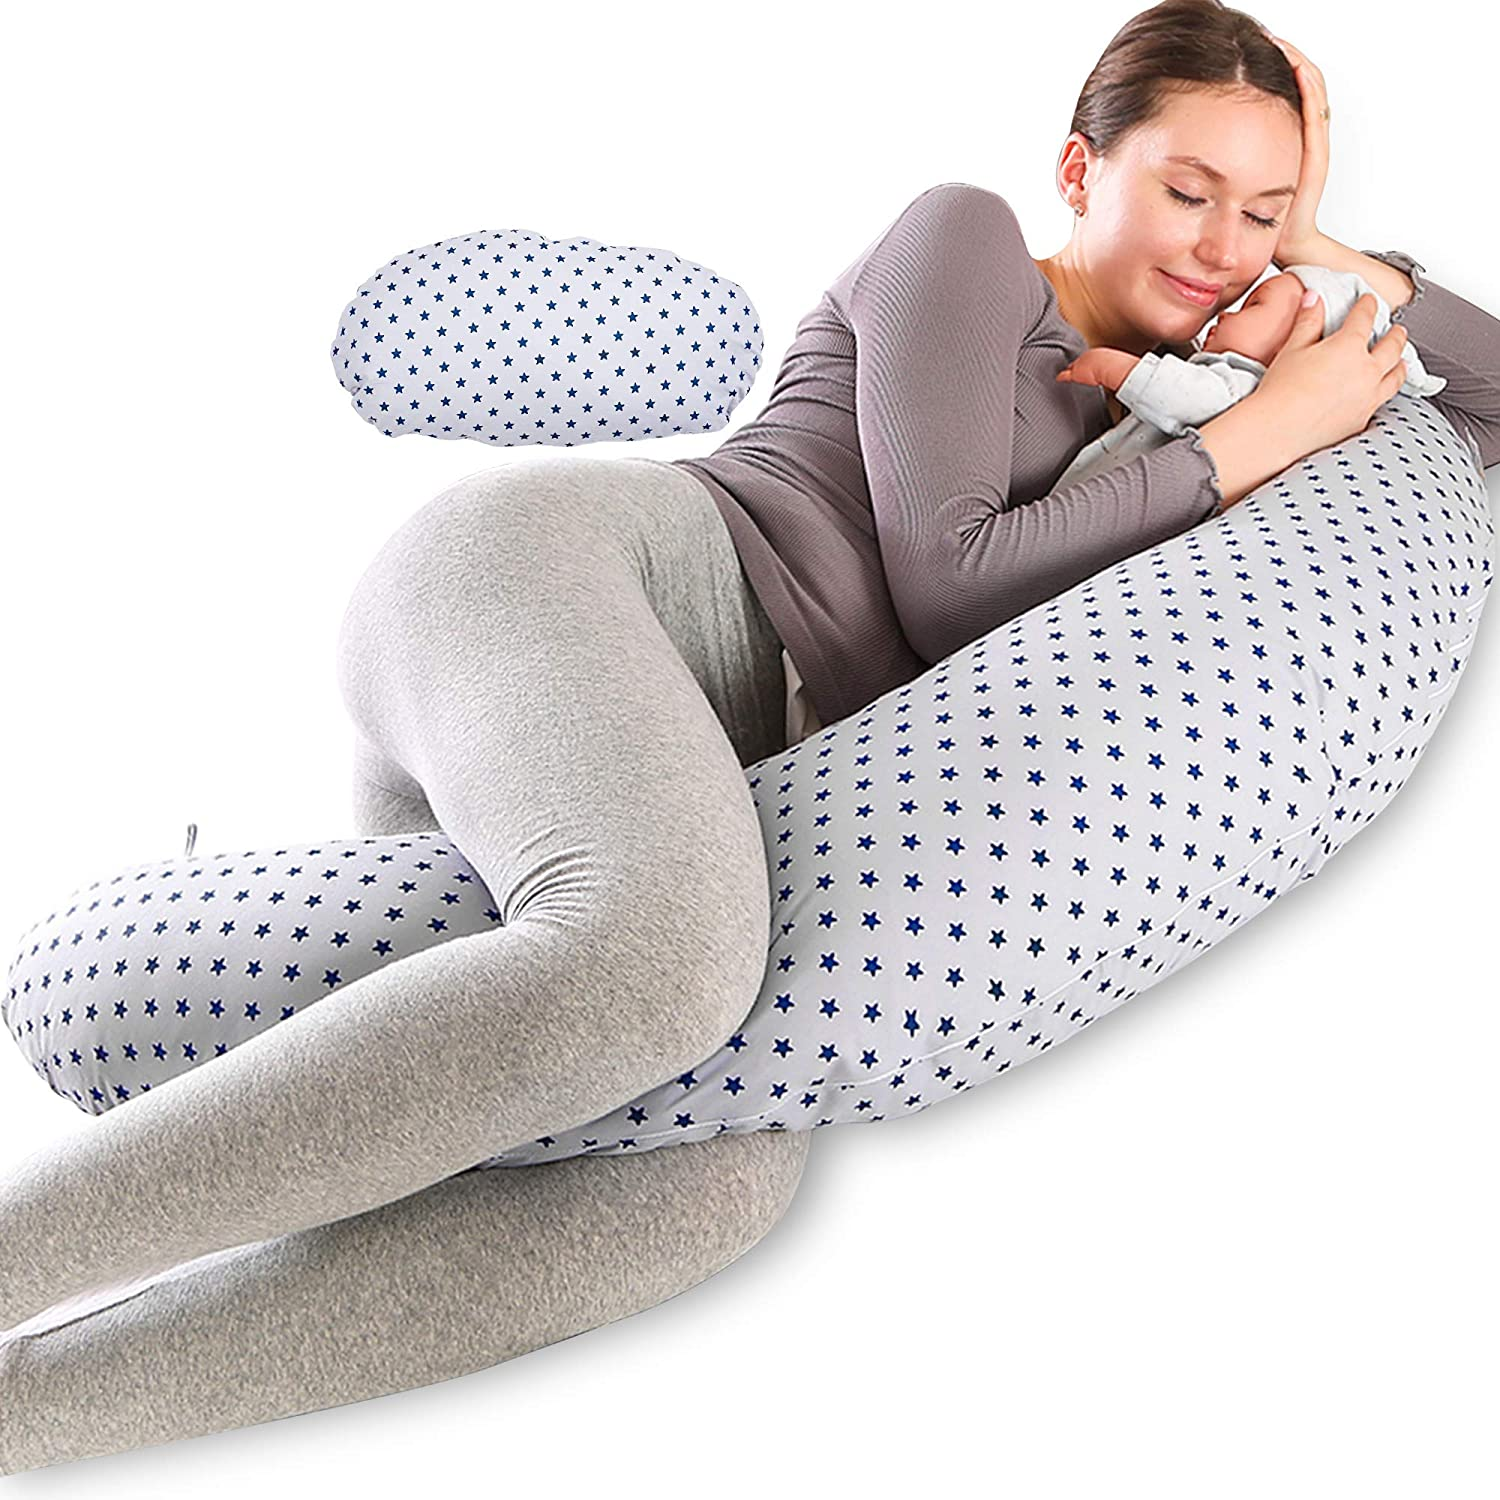 Chilling Home Multifunctional Pregnancy Pillow & Breastfeeding Pillow, Full Body Support Maternity Pillow for Sleeping with Inner Cushion &100% Cotton Cover for Baby Nest, Nursing Pillow, Grey